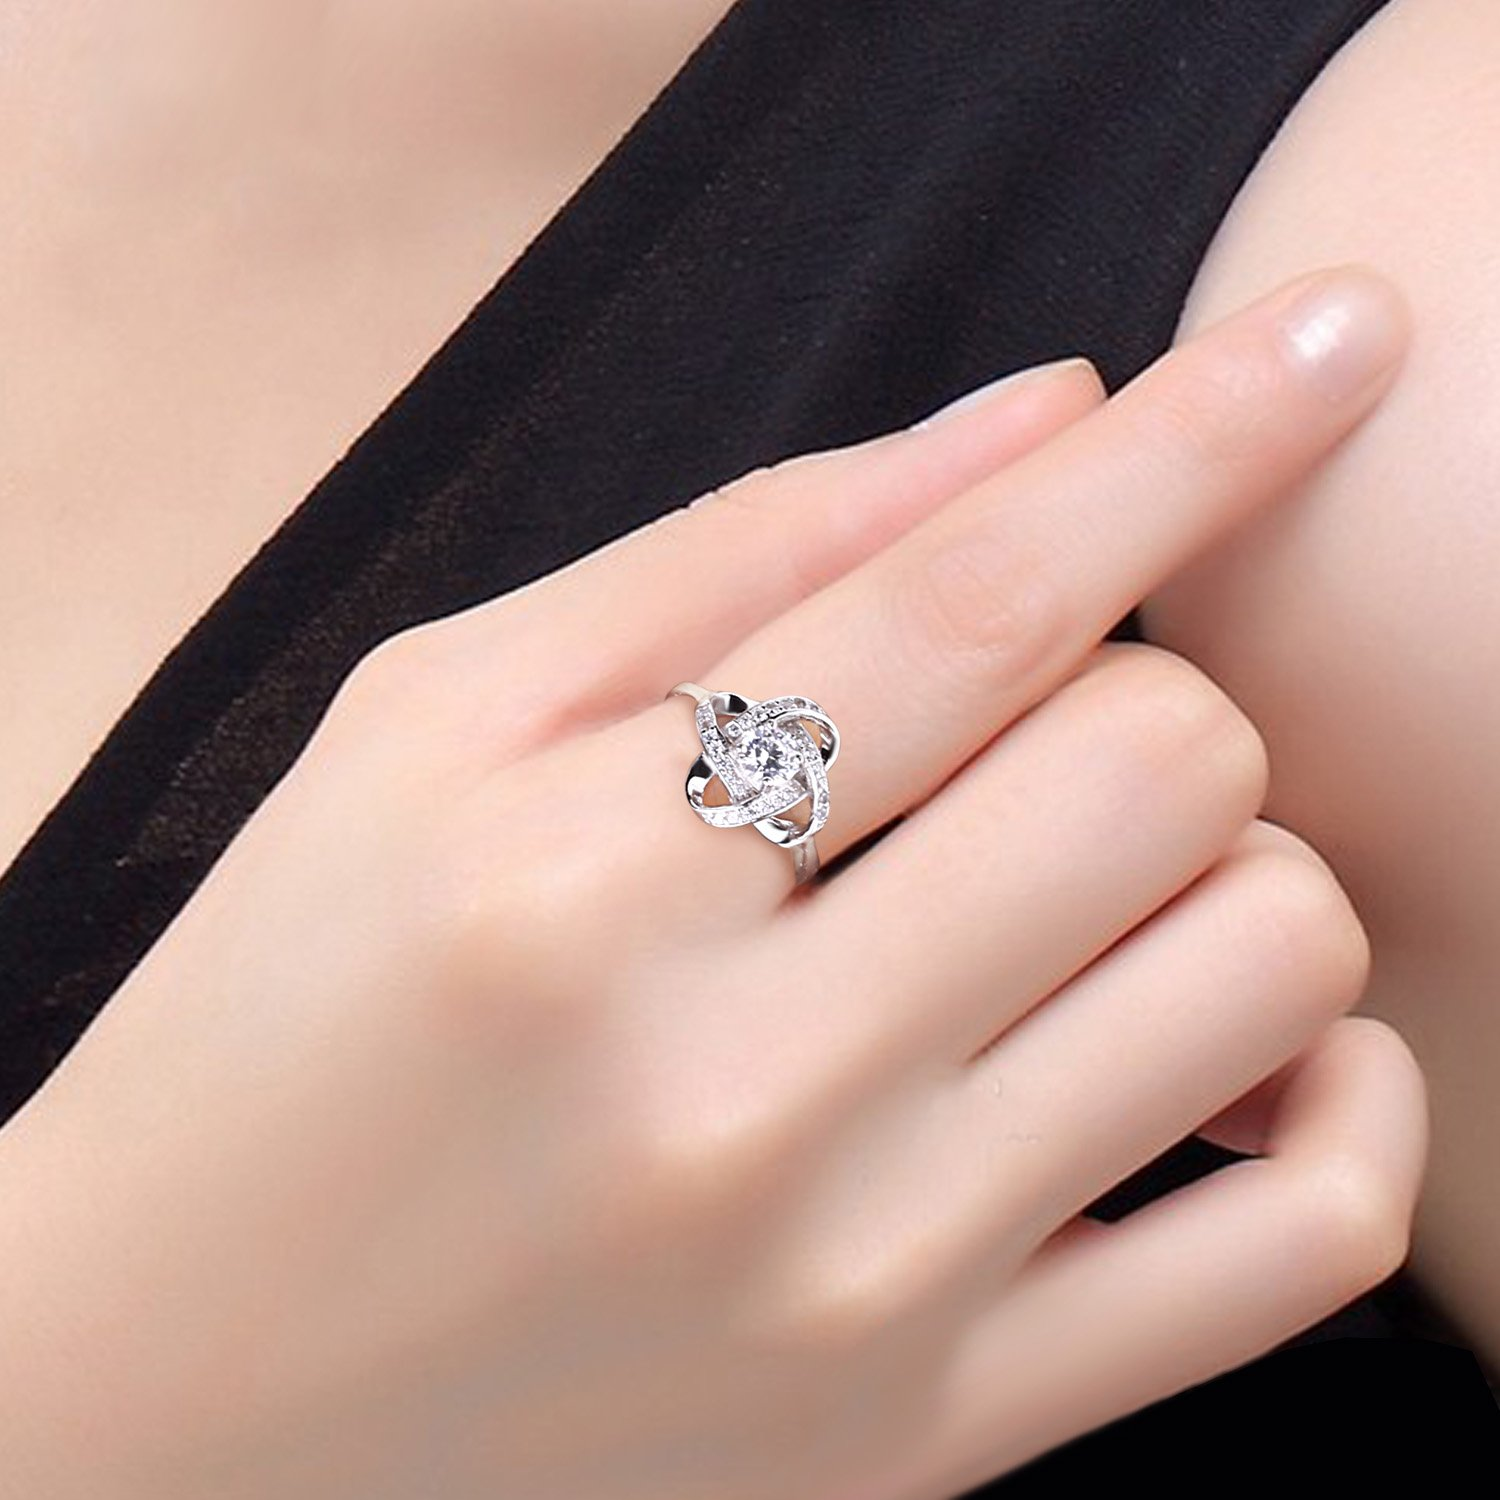 B.Catcher Women's Ring Adjustable 925 Sterling Silver Cubic Zirconia Valentine's Gift for Her by B.Catcher (Image #5)